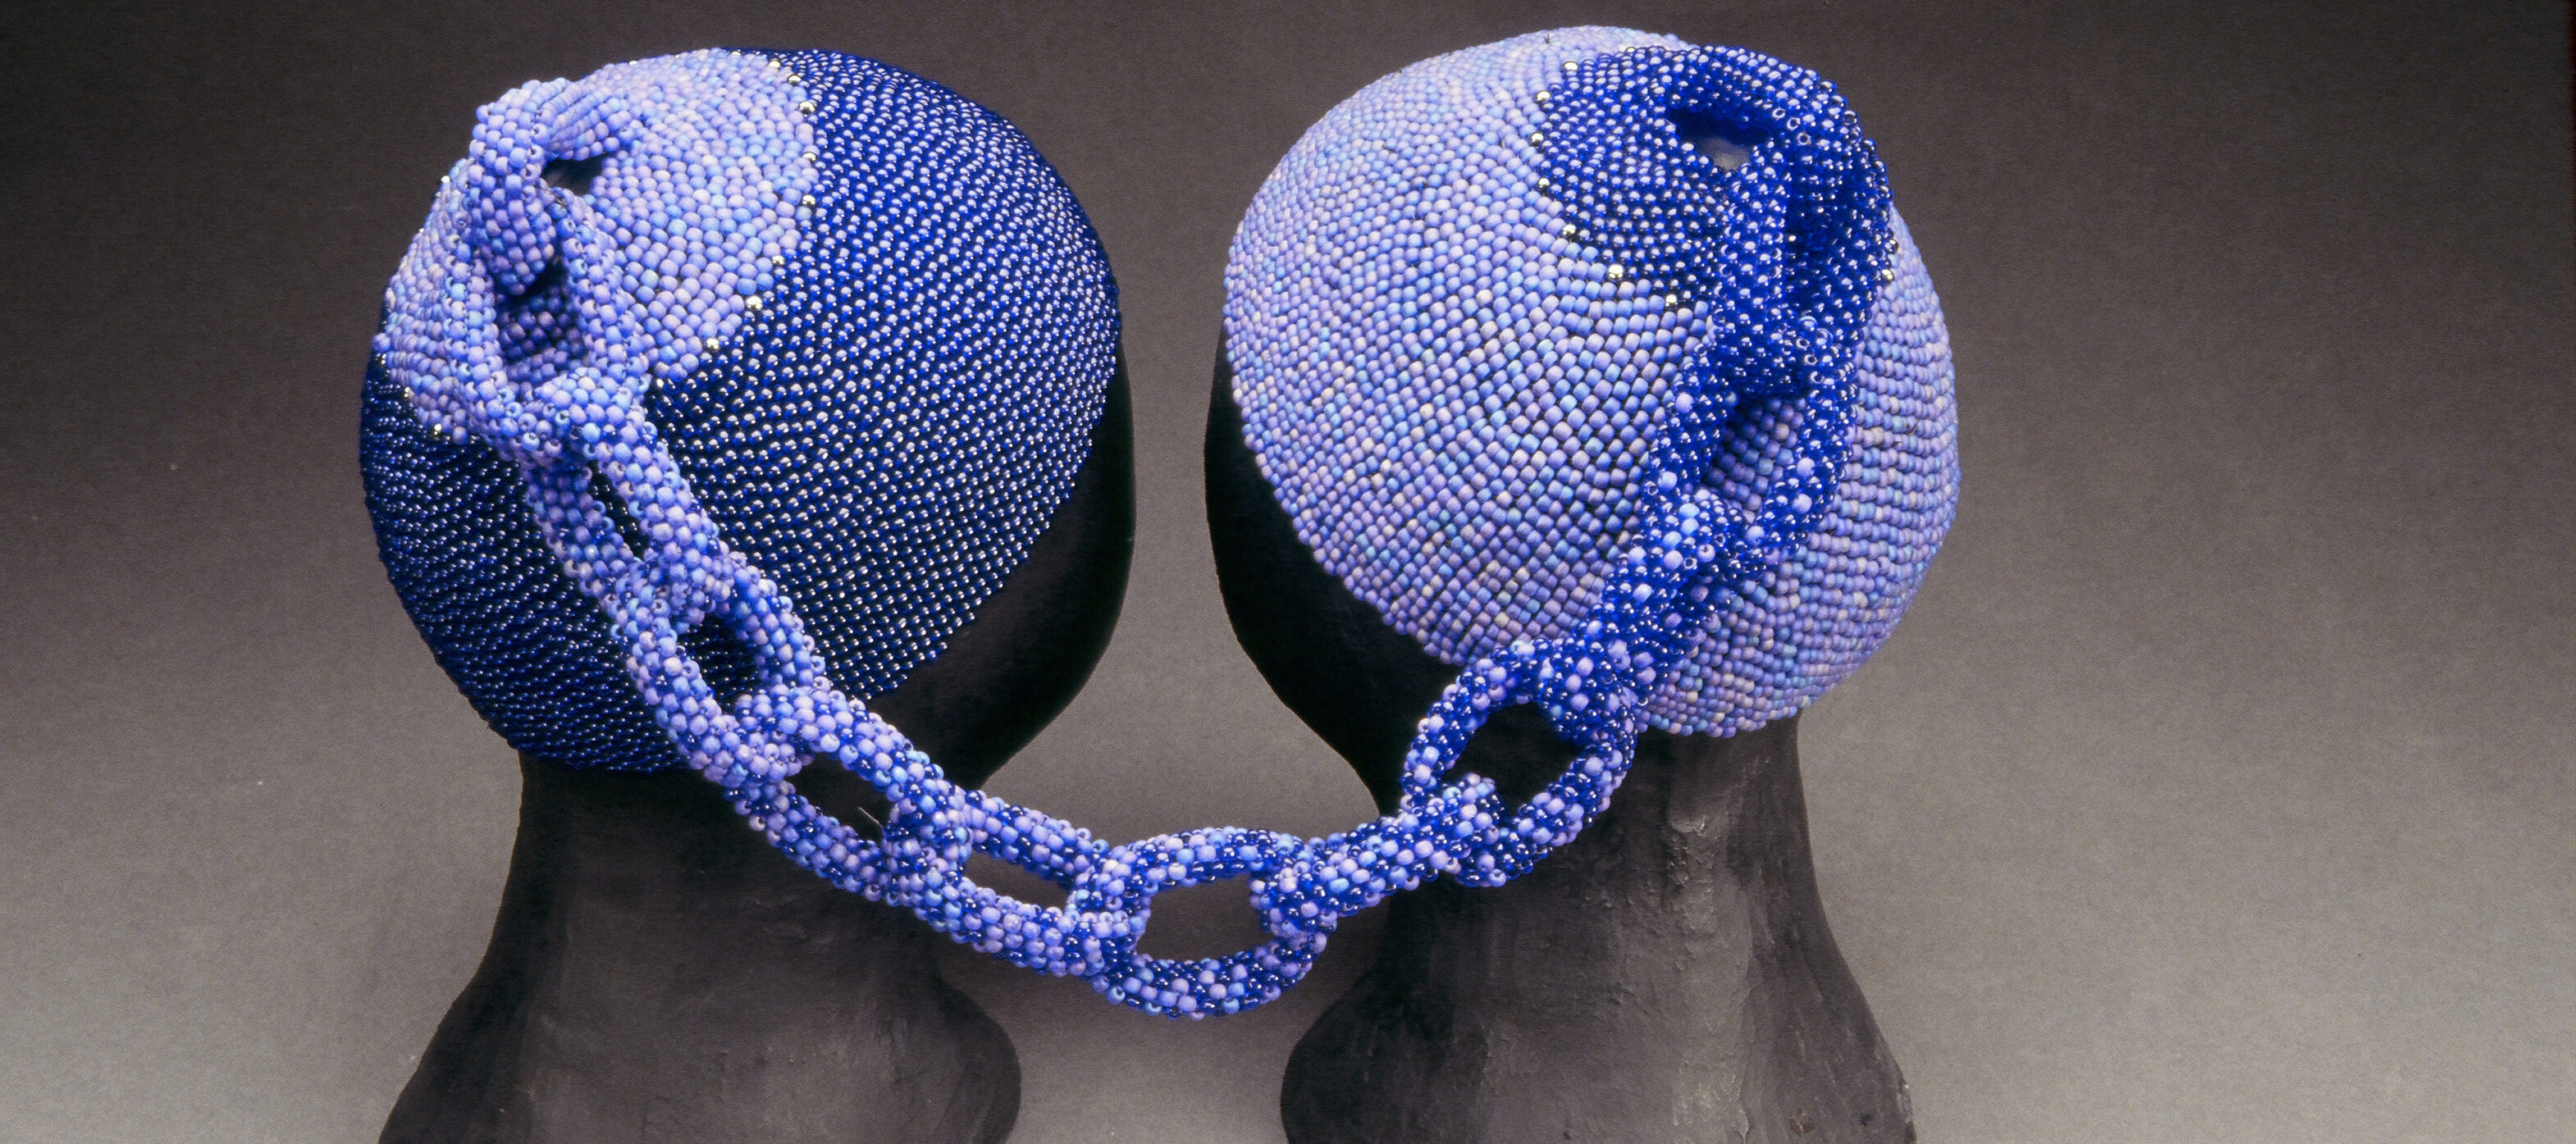 Sonya Clark, <i>Blued</i>, 1998; Glass beads, 9 x 14 x 9 in.; Private collection; © Sonya Clark; Photo by Tom McInaville